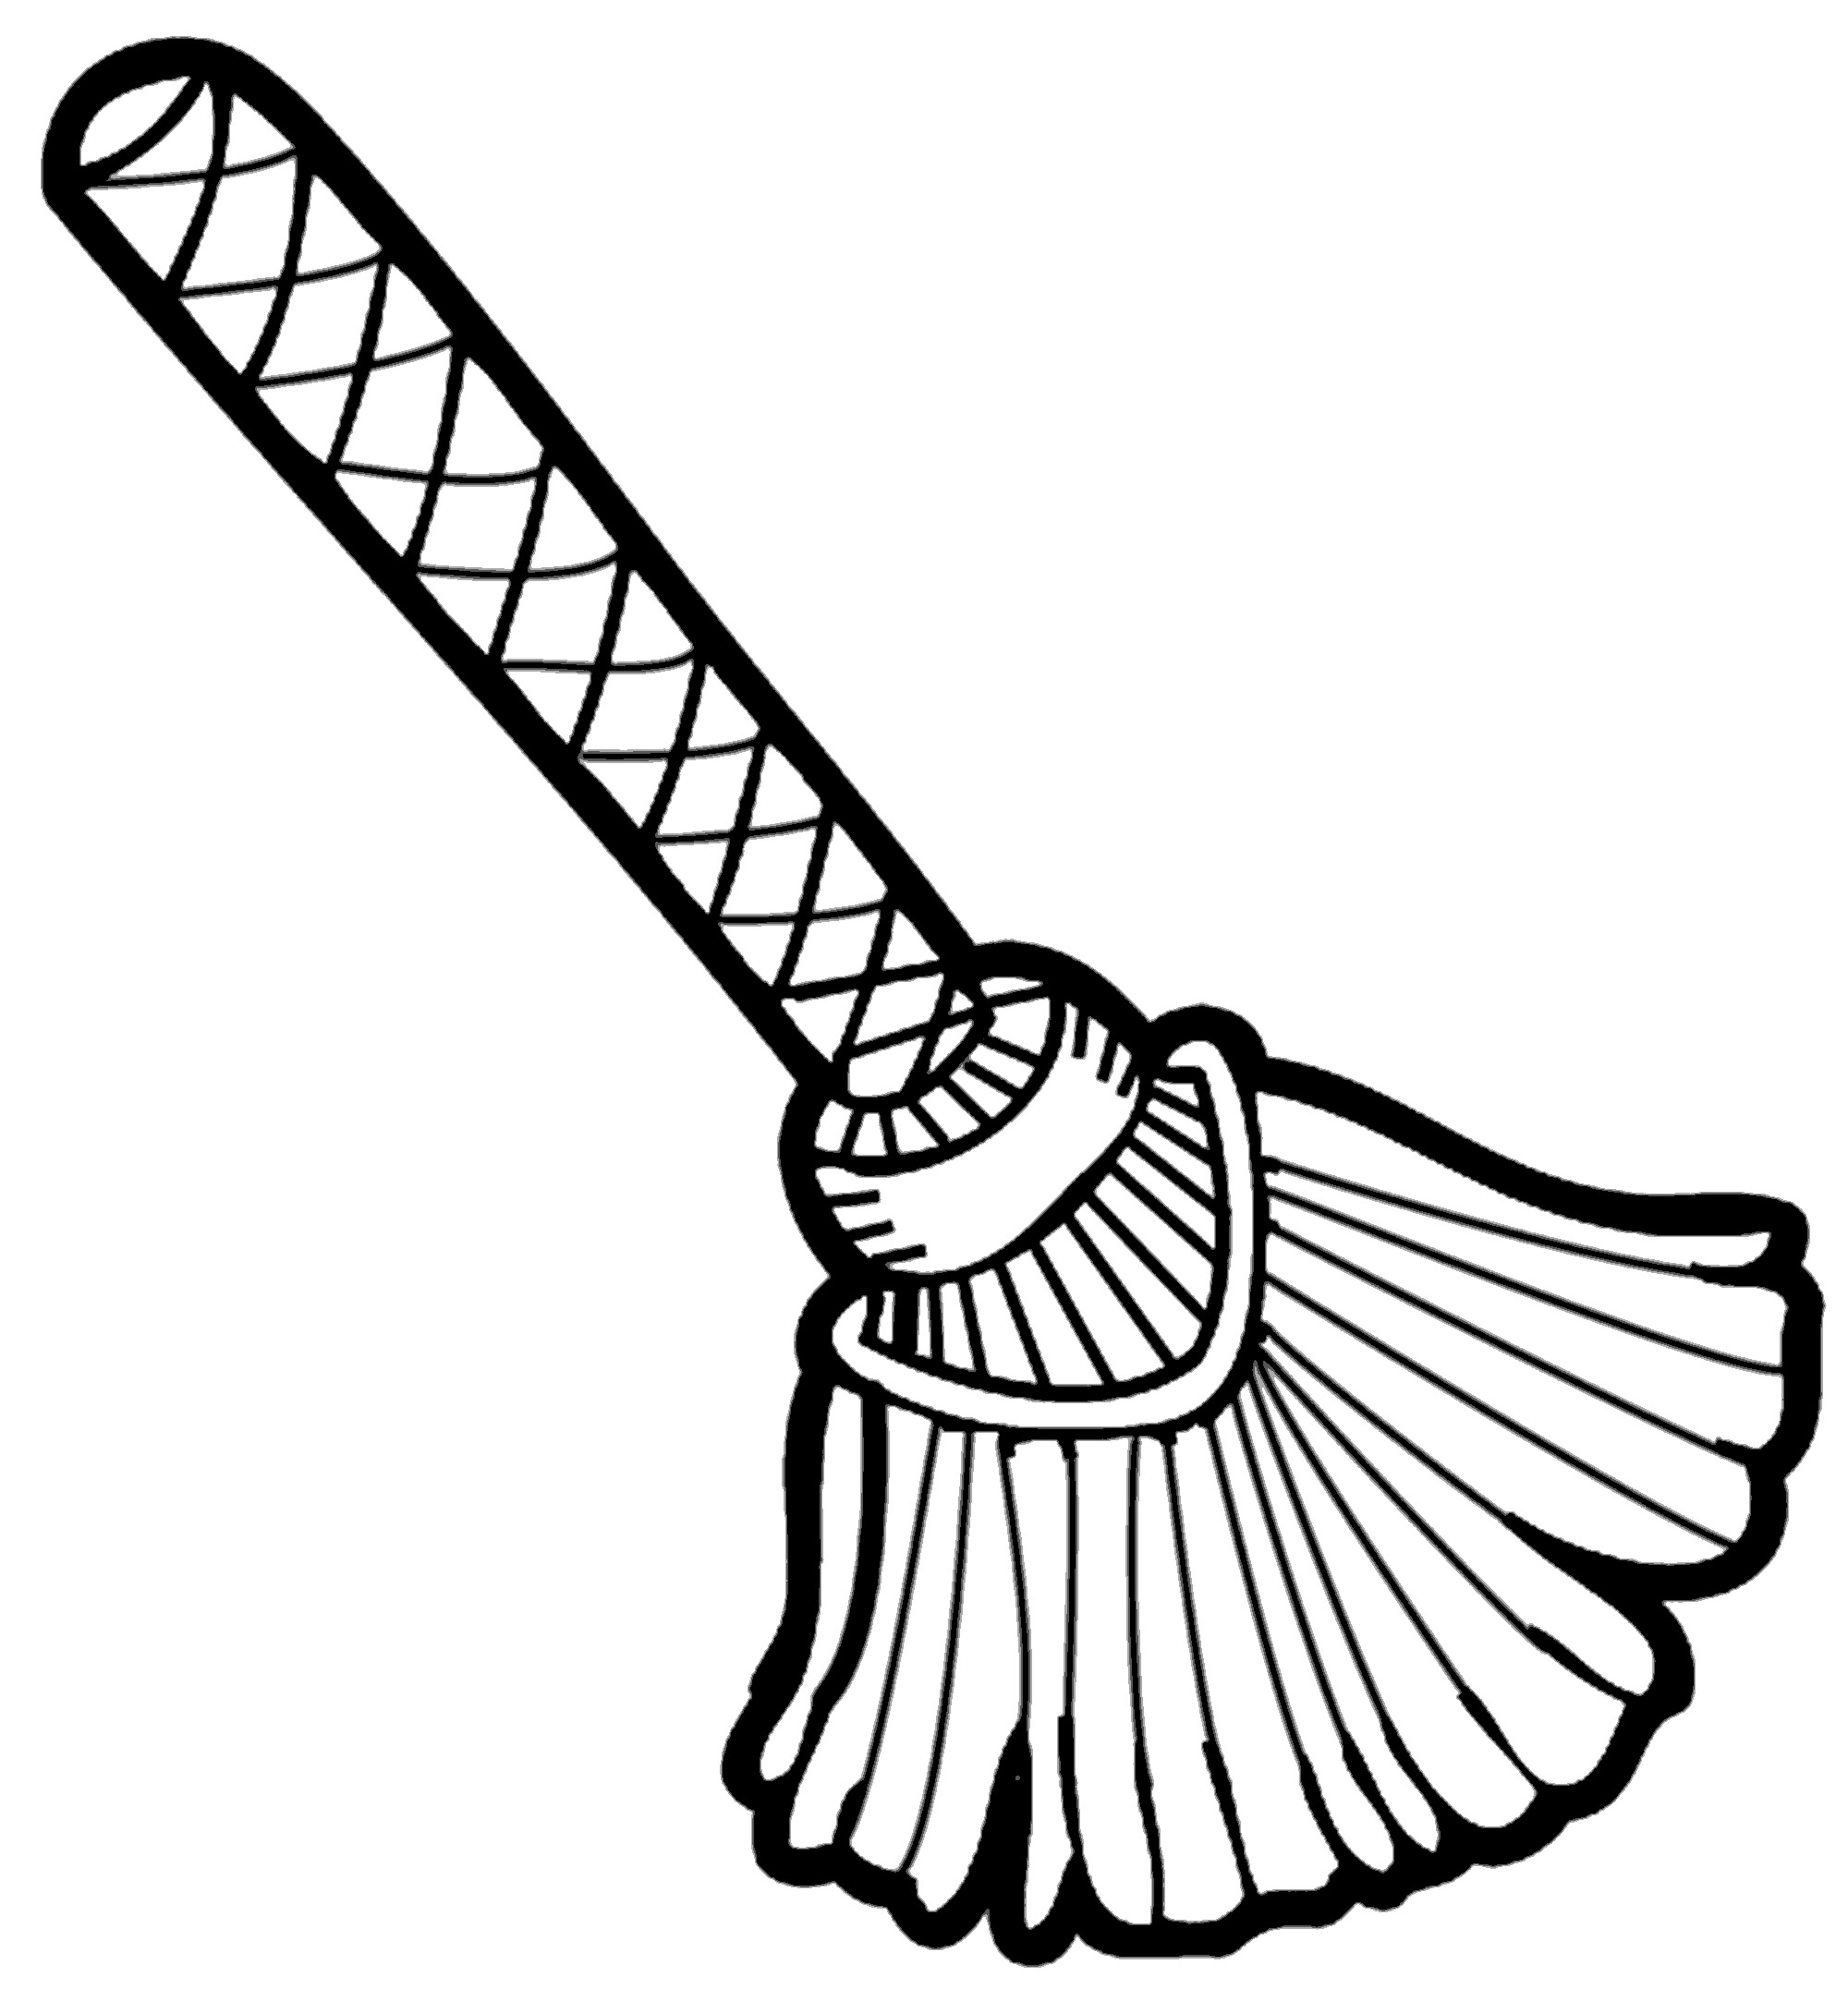 Broom Clipart Black And White Free Images 6